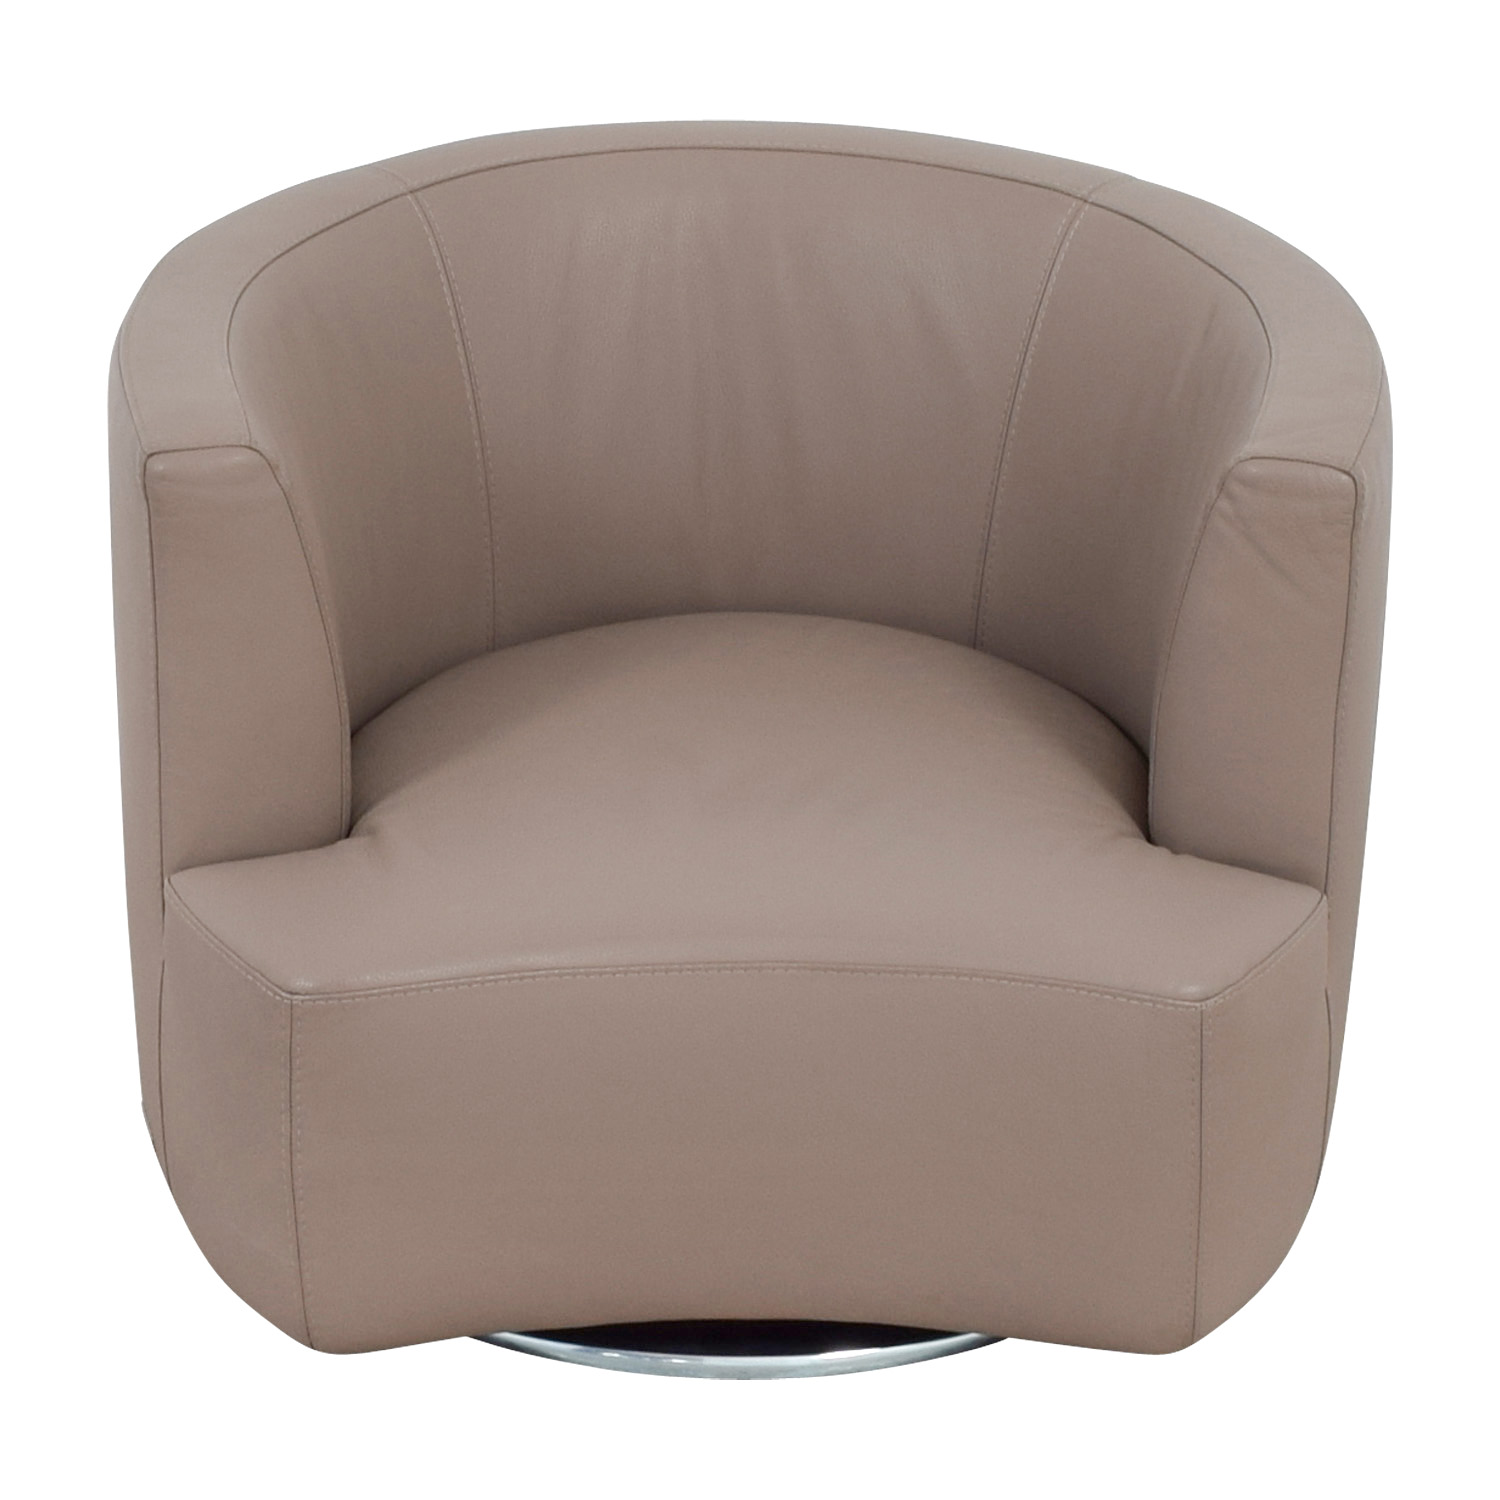 fabulous shop roche bobois tan leather swivel chair roche bobois with roche bobois avignon. Black Bedroom Furniture Sets. Home Design Ideas